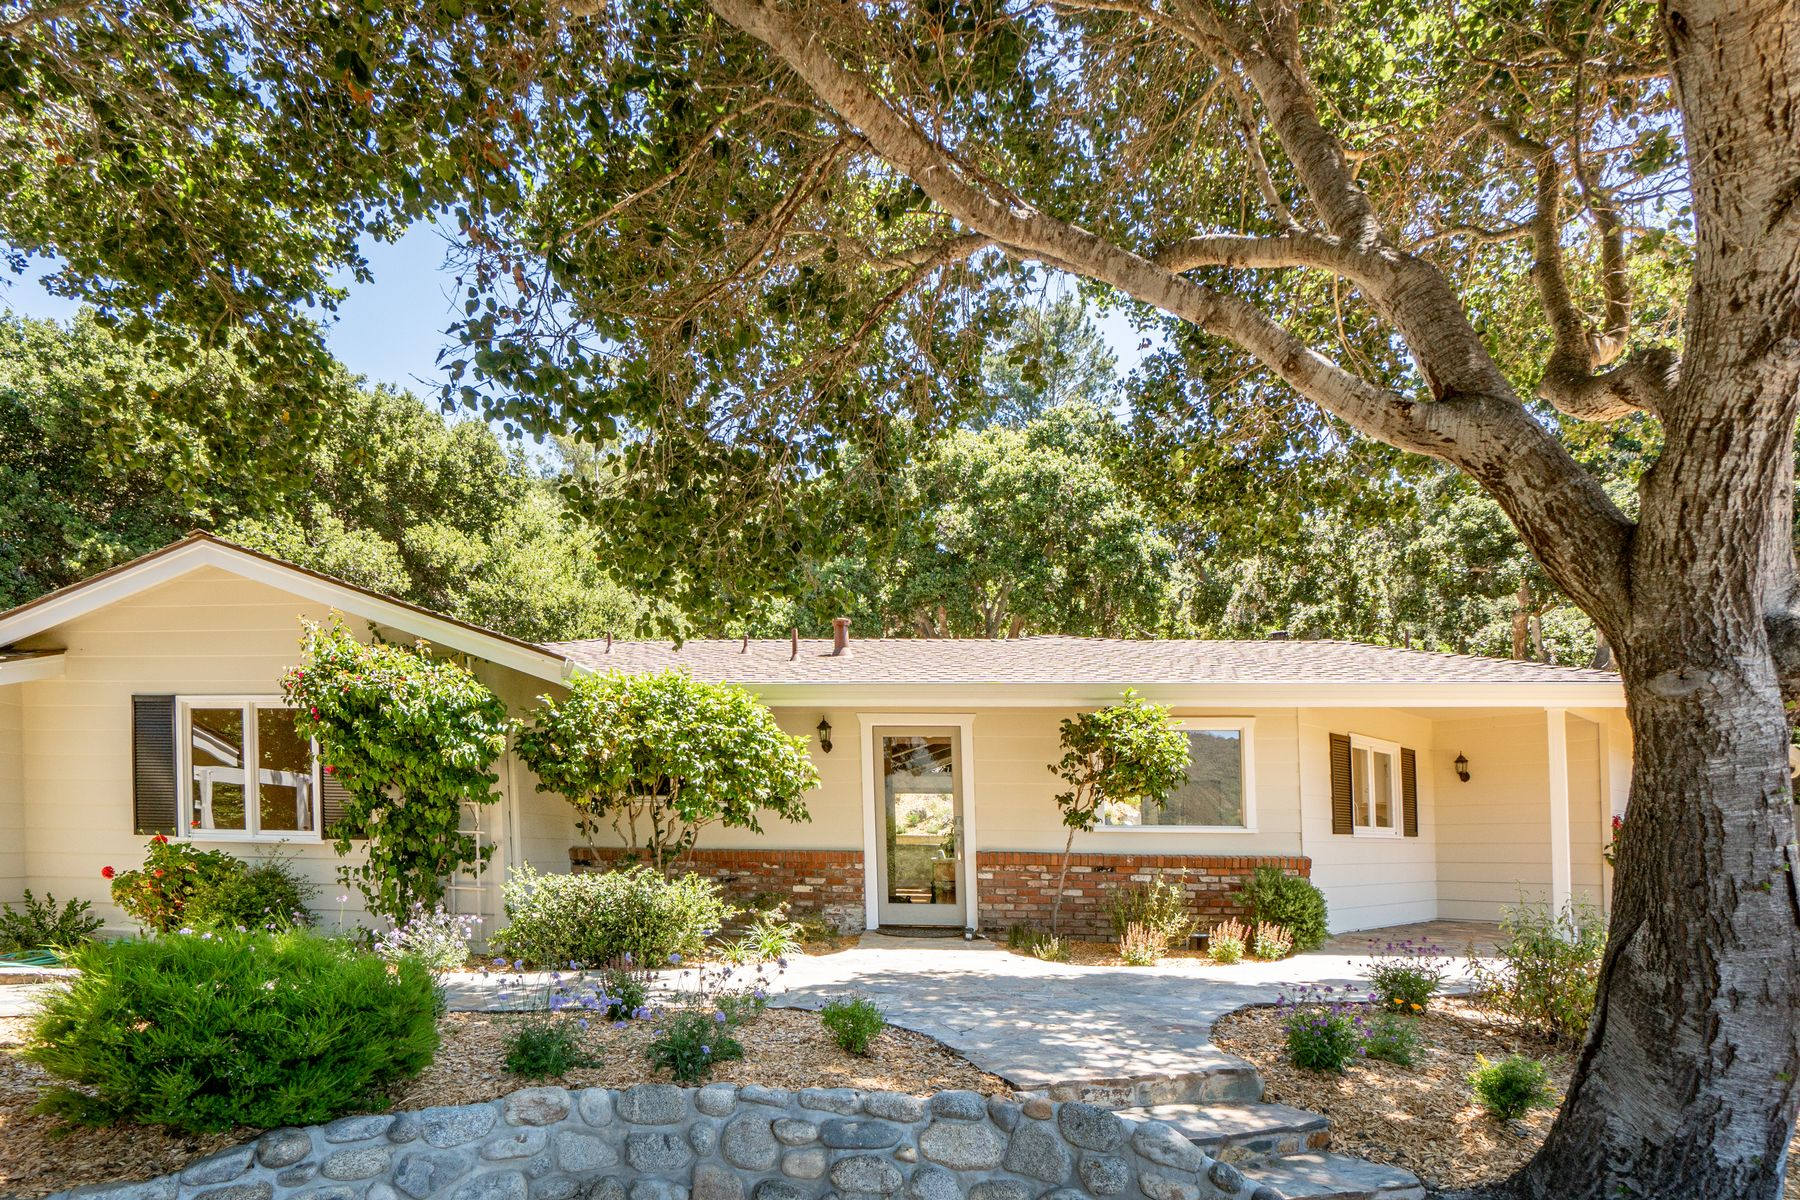 Single Family Homes for Sale at Spectacular Sunrise and Mountain Views 167 El Caminito Road Carmel Valley, California 93924 United States